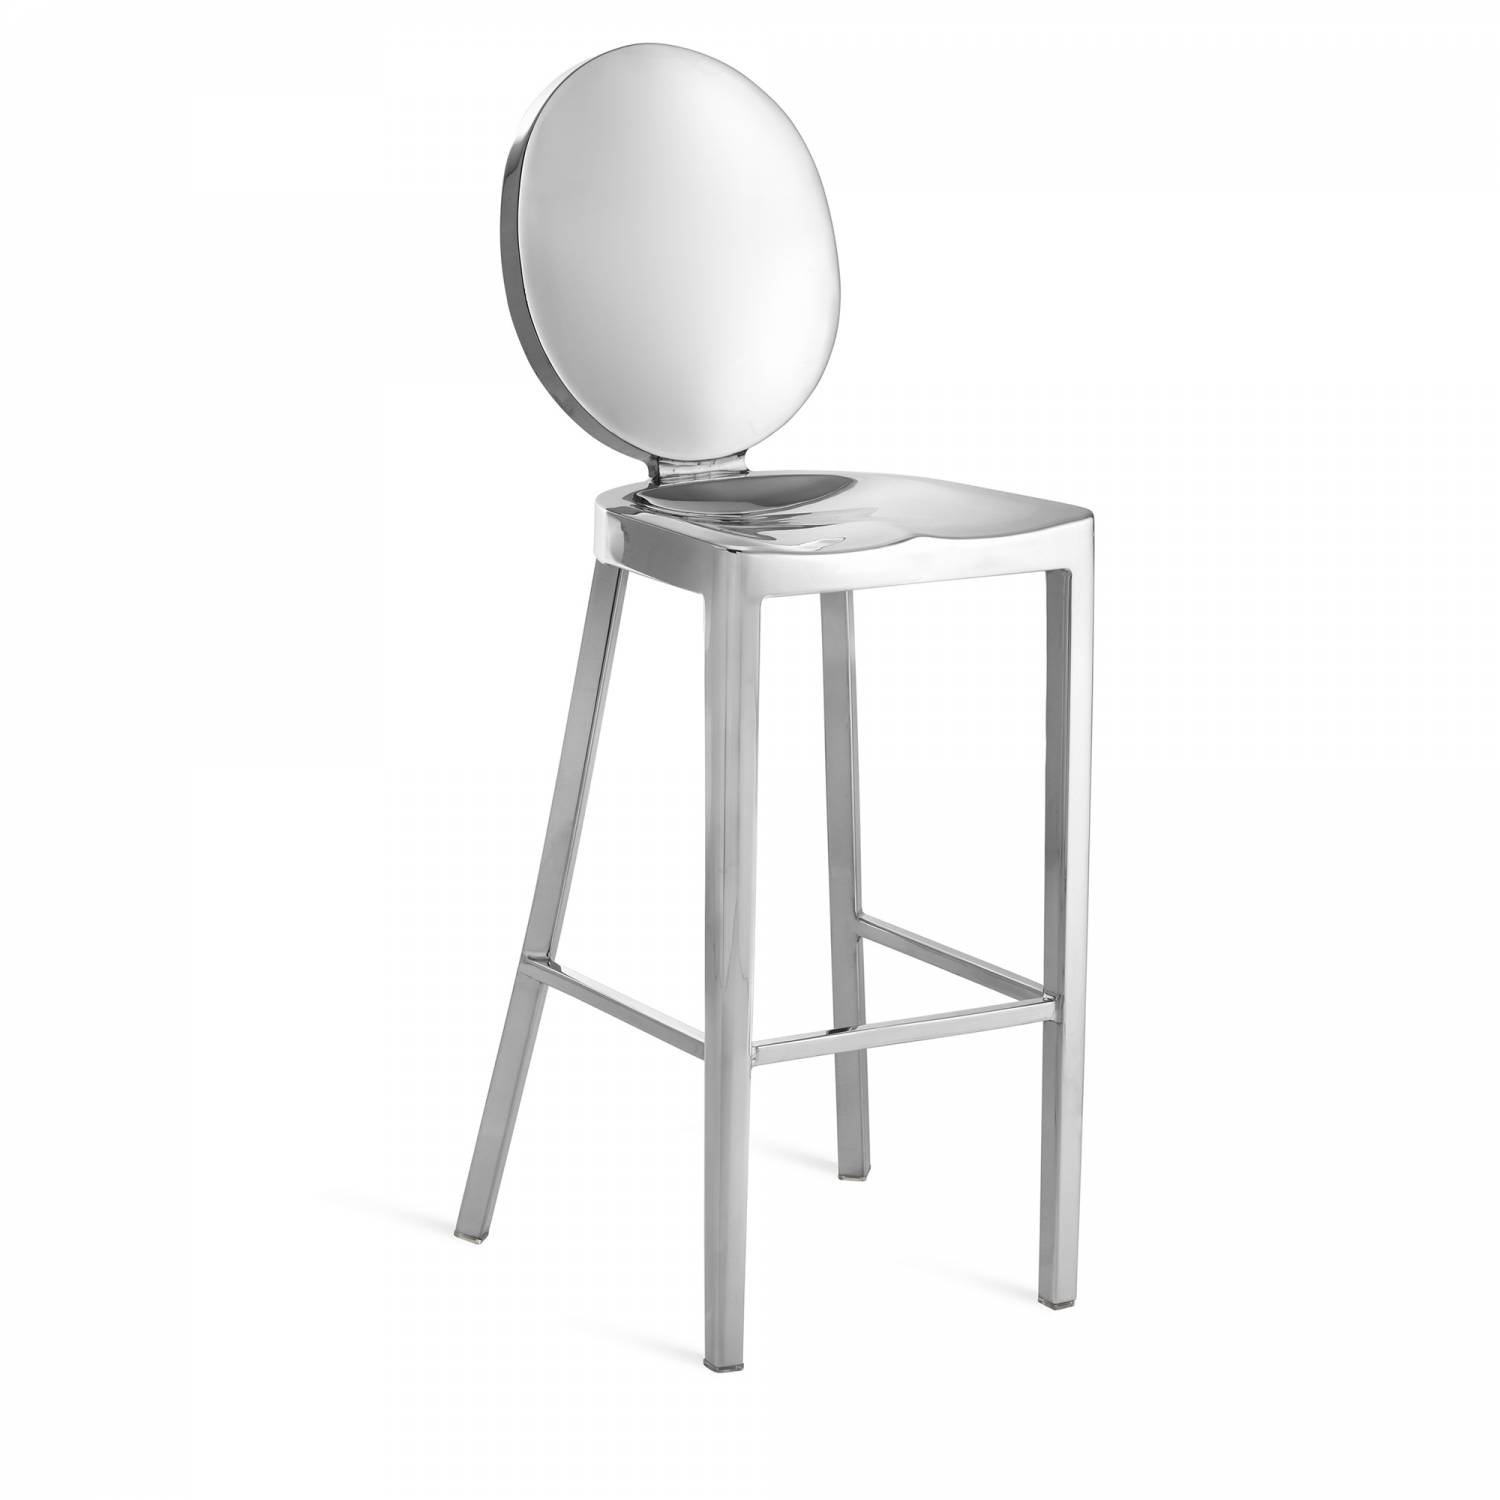 KONG BAR CHAIR by Philippe Starck